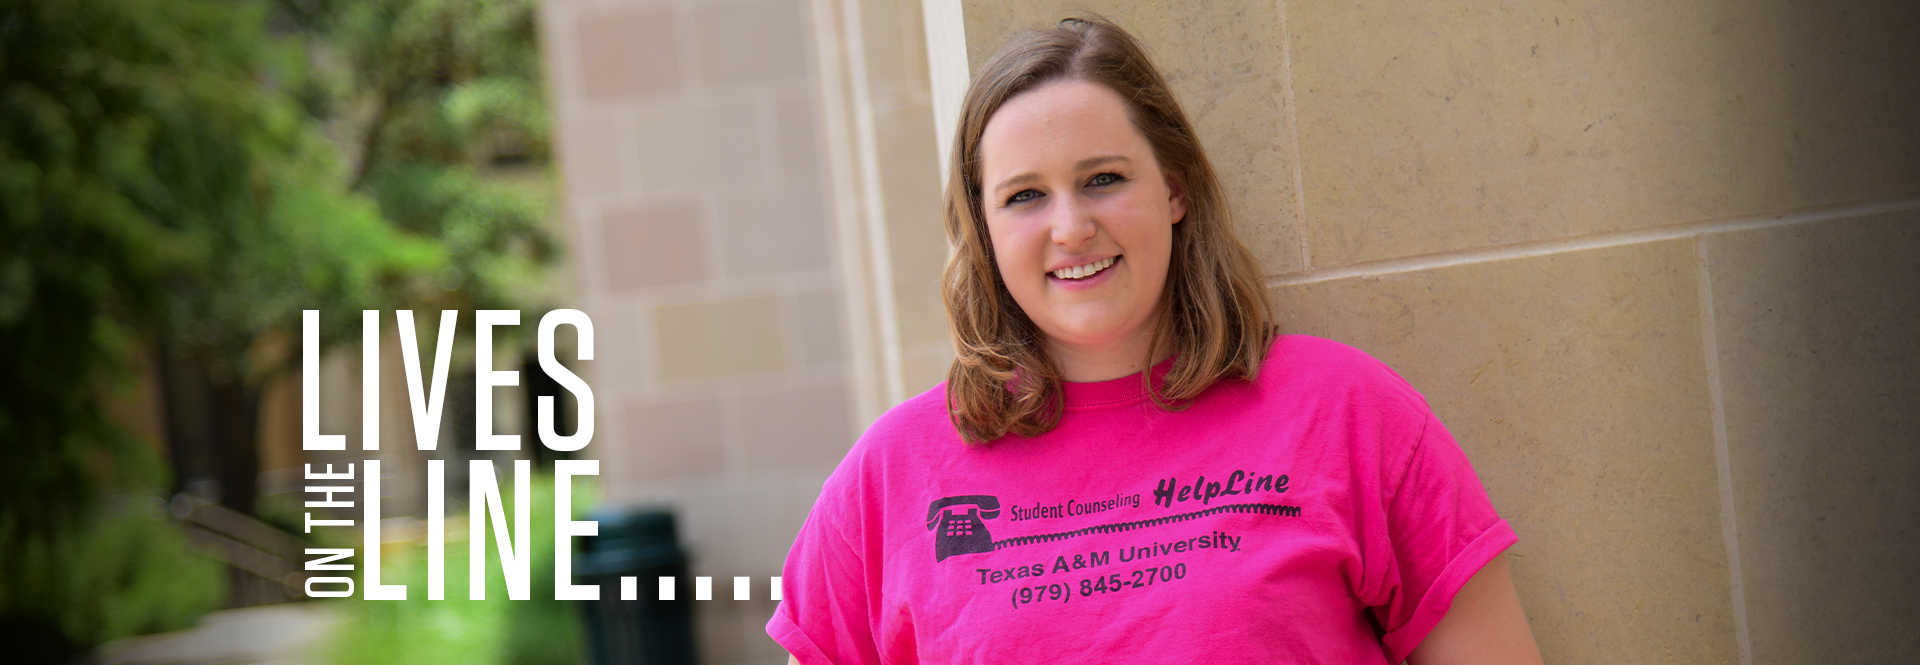 HelpLine is an after-hours mental health service offered by Texas A&M Counseling & Psychological Services and supported by the Houston A&M Mothers